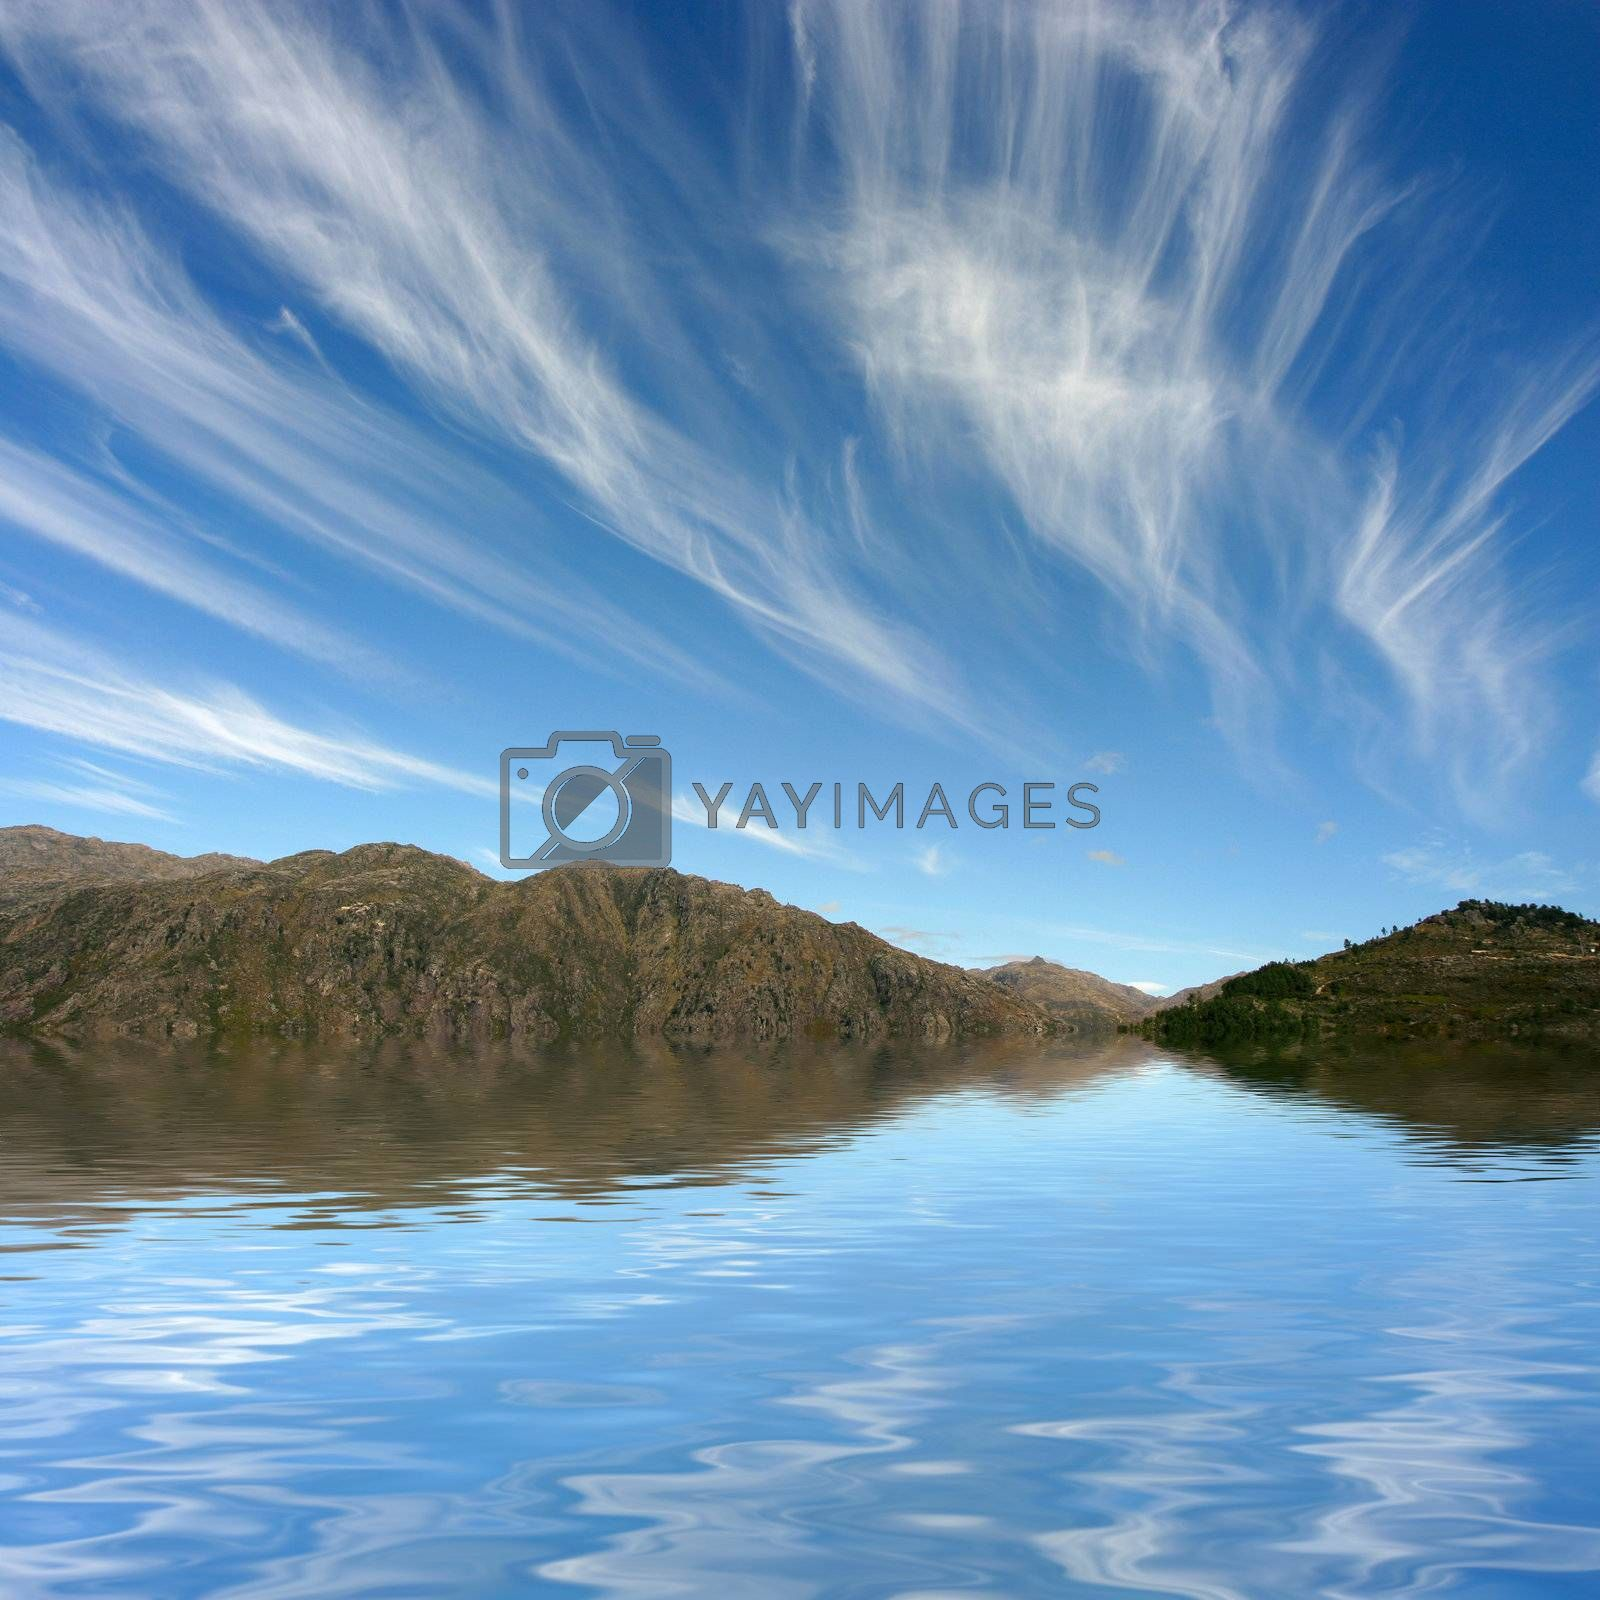 Photo of a dreamy sky, reflected on water.